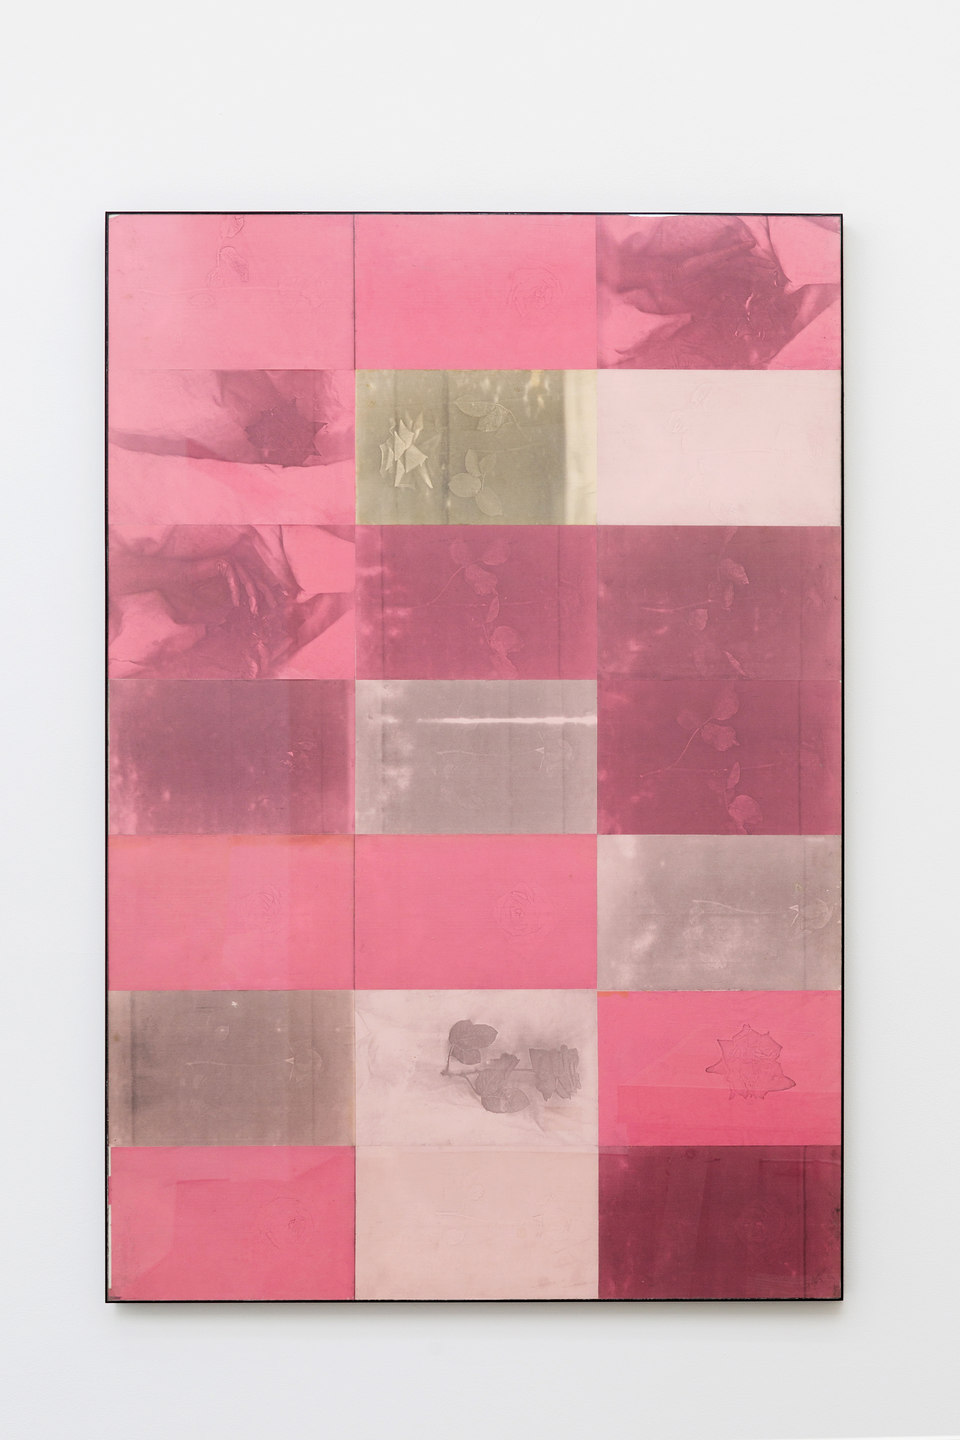 Barbara T Smith, Pink, 1965, Xerox prints, 150 x 100cm, Cell Project Space